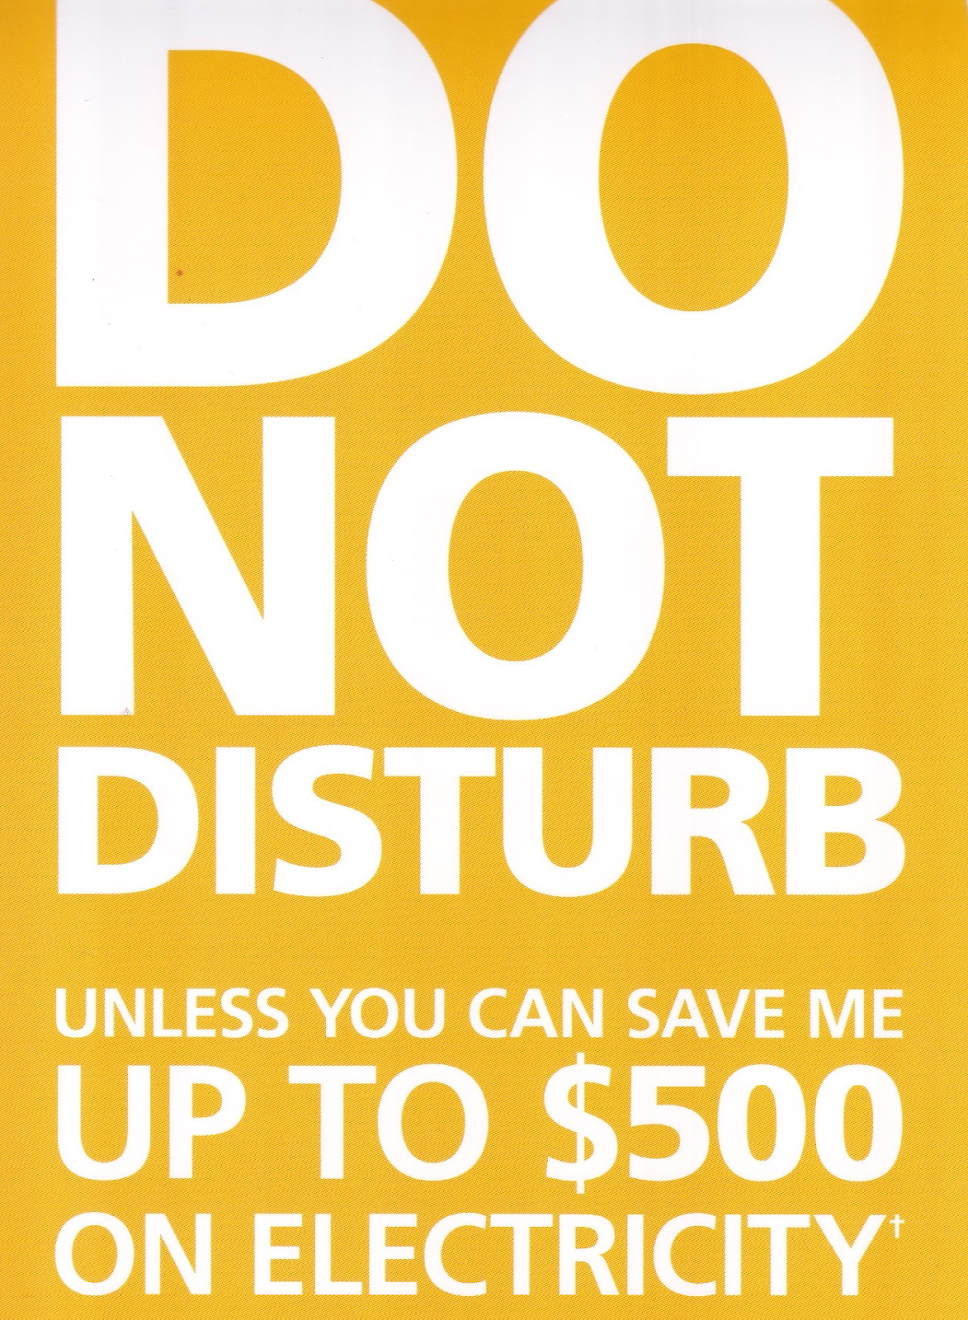 Save $500 on electricity.